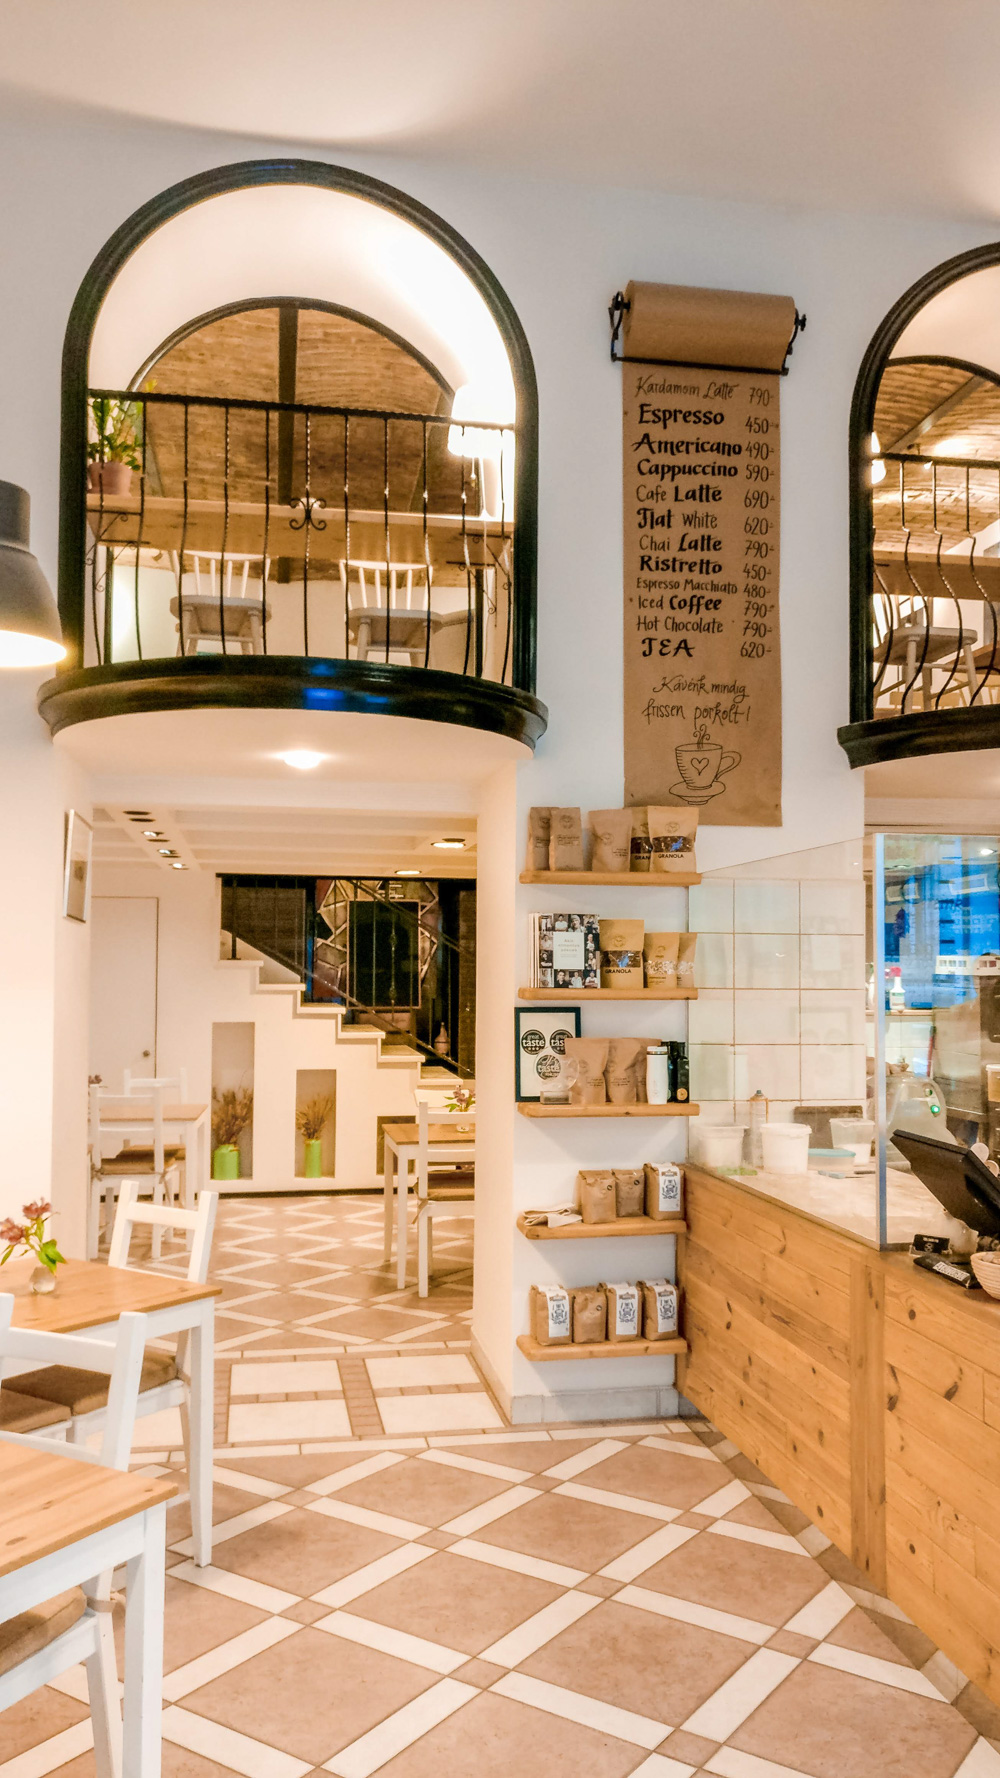 Artizán bakery and coffee shop - Budapest's best breakfast & brunch places close to the Parliament | Aliz's Wonderland